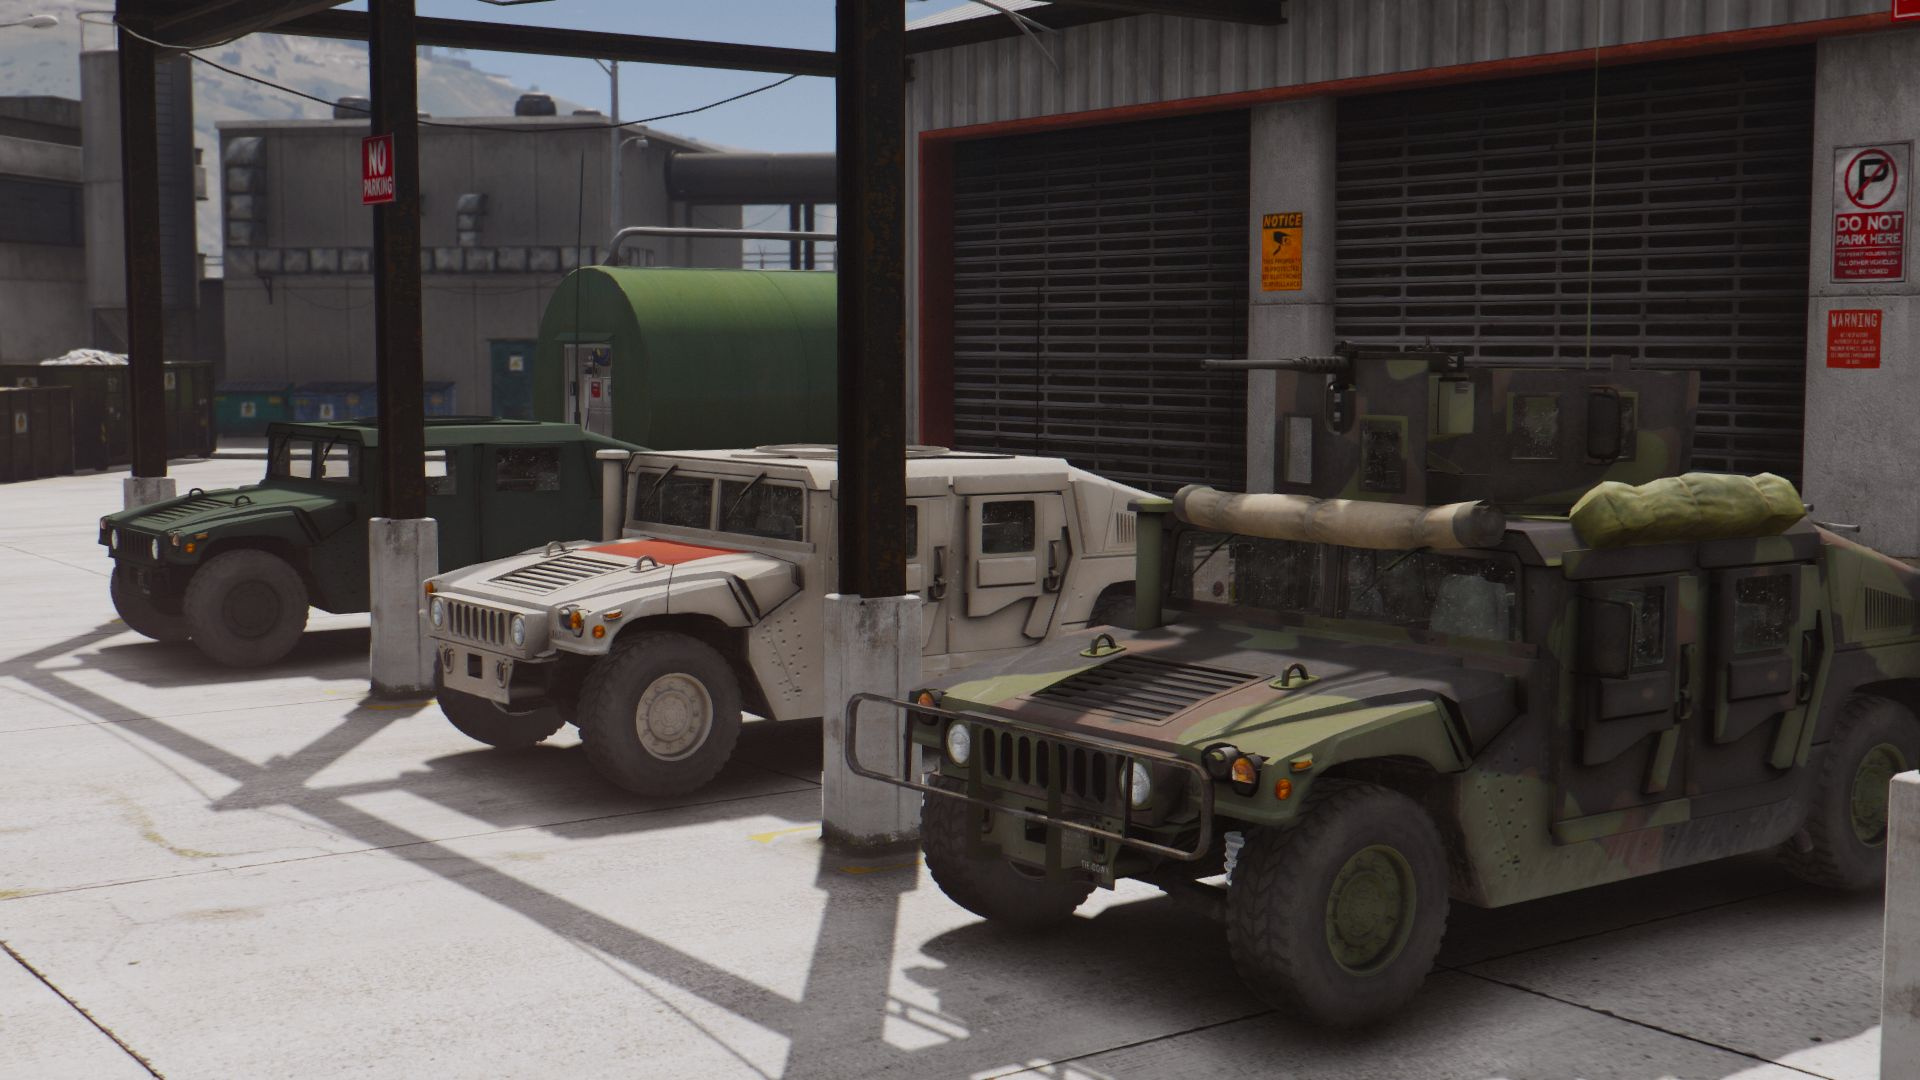 Ford Fusion Mods >> M1114 Humvee (unarmed) [Add-On] - GTA5-Mods.com